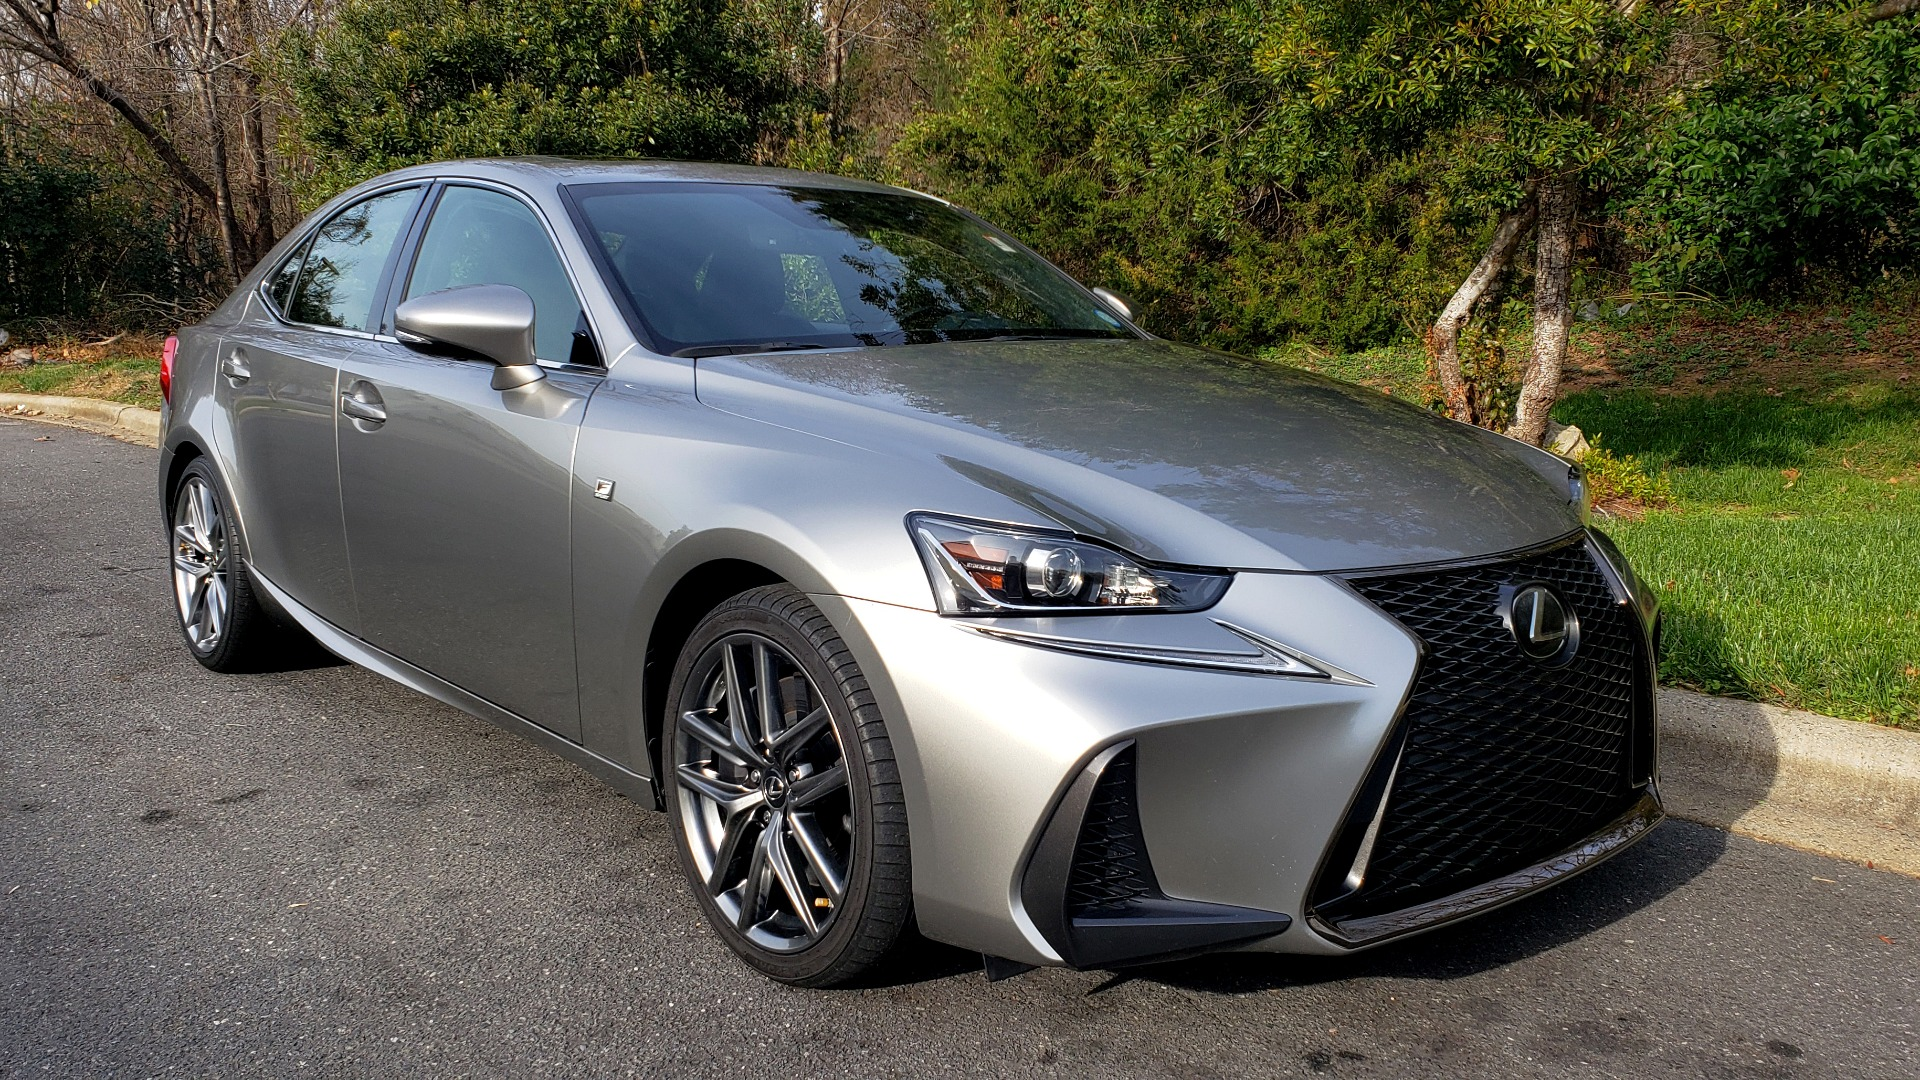 Used 2017 Lexus IS 200 TURBO F-SPORT / BSM / SUNROOF / VENT SEATS / REARVIEW for sale $24,945 at Formula Imports in Charlotte NC 28227 4